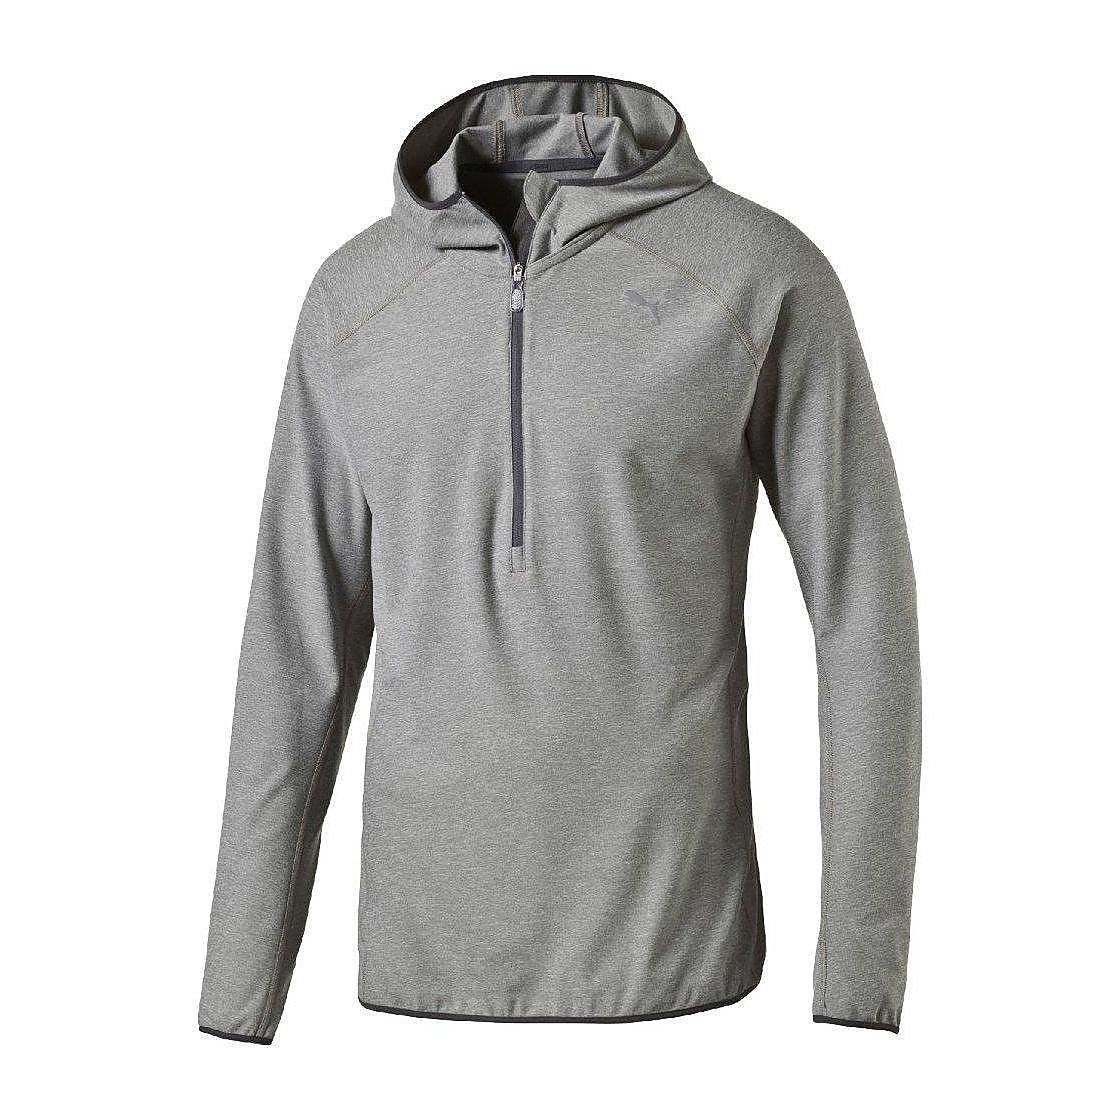 PUMA LONGSLEEVE HOODED TOP